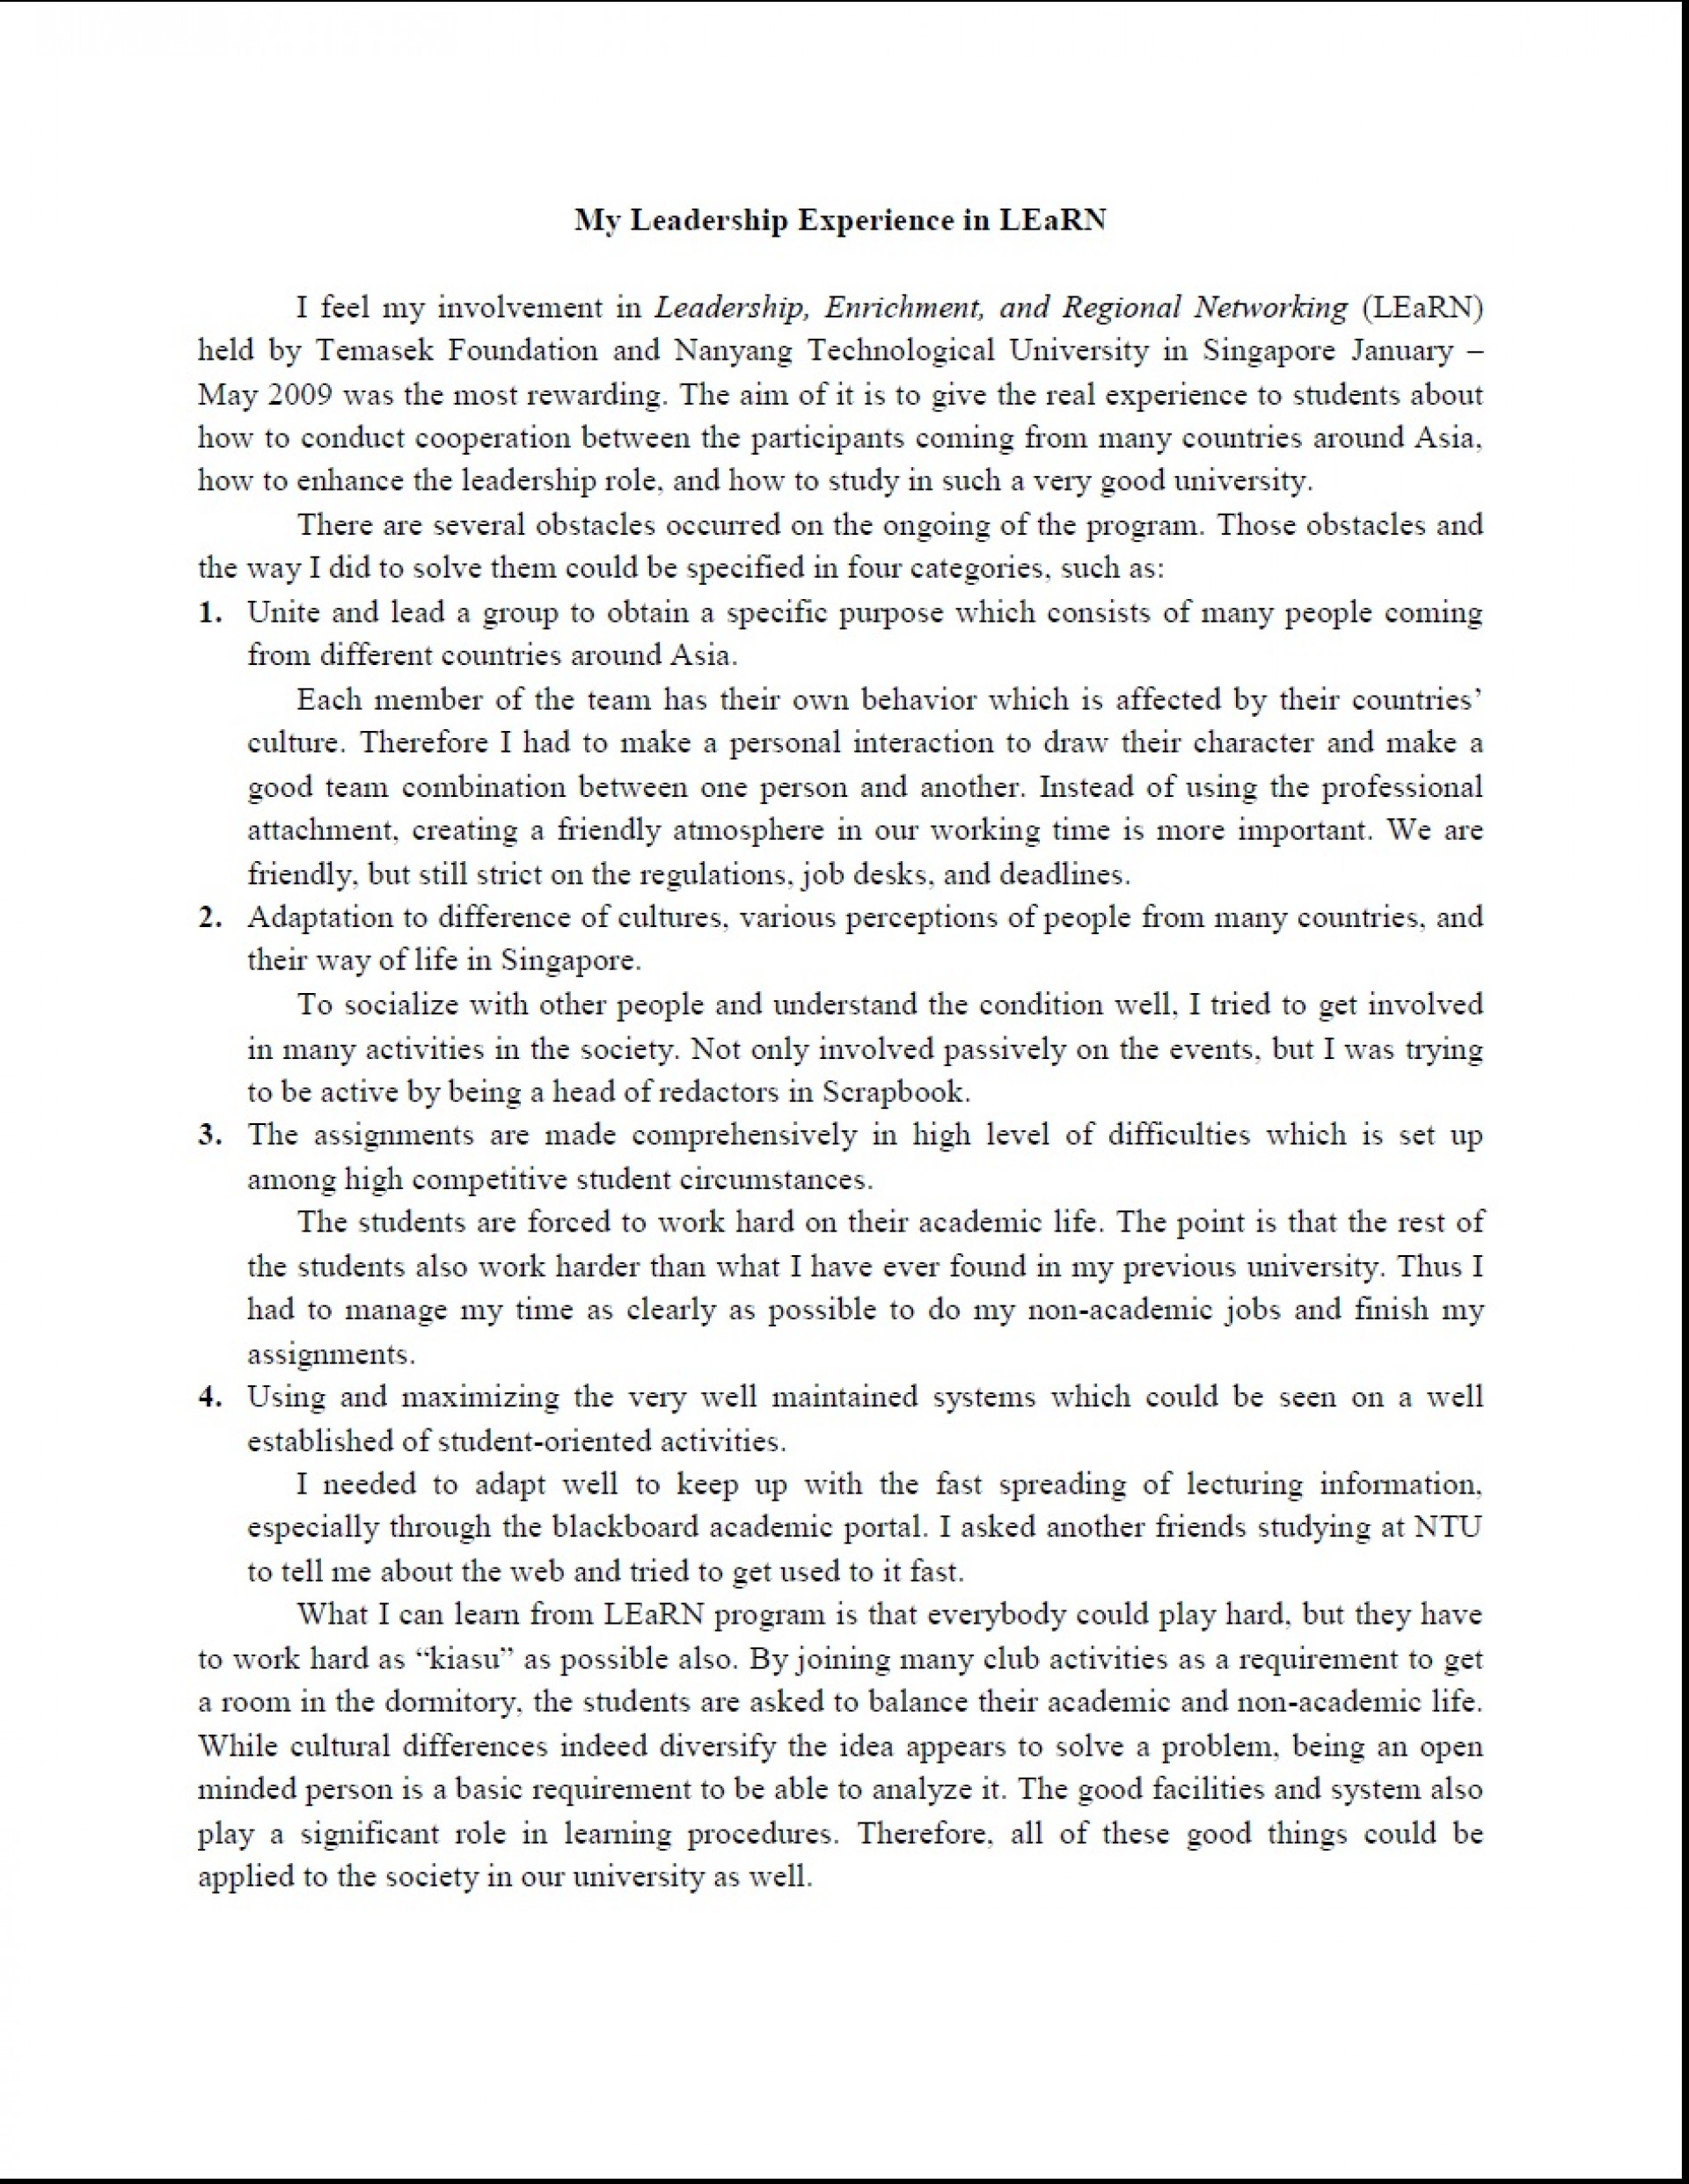 002 Leadership Essays My Unique Essay Examples Personal Philosophy Paper Mba College 1920